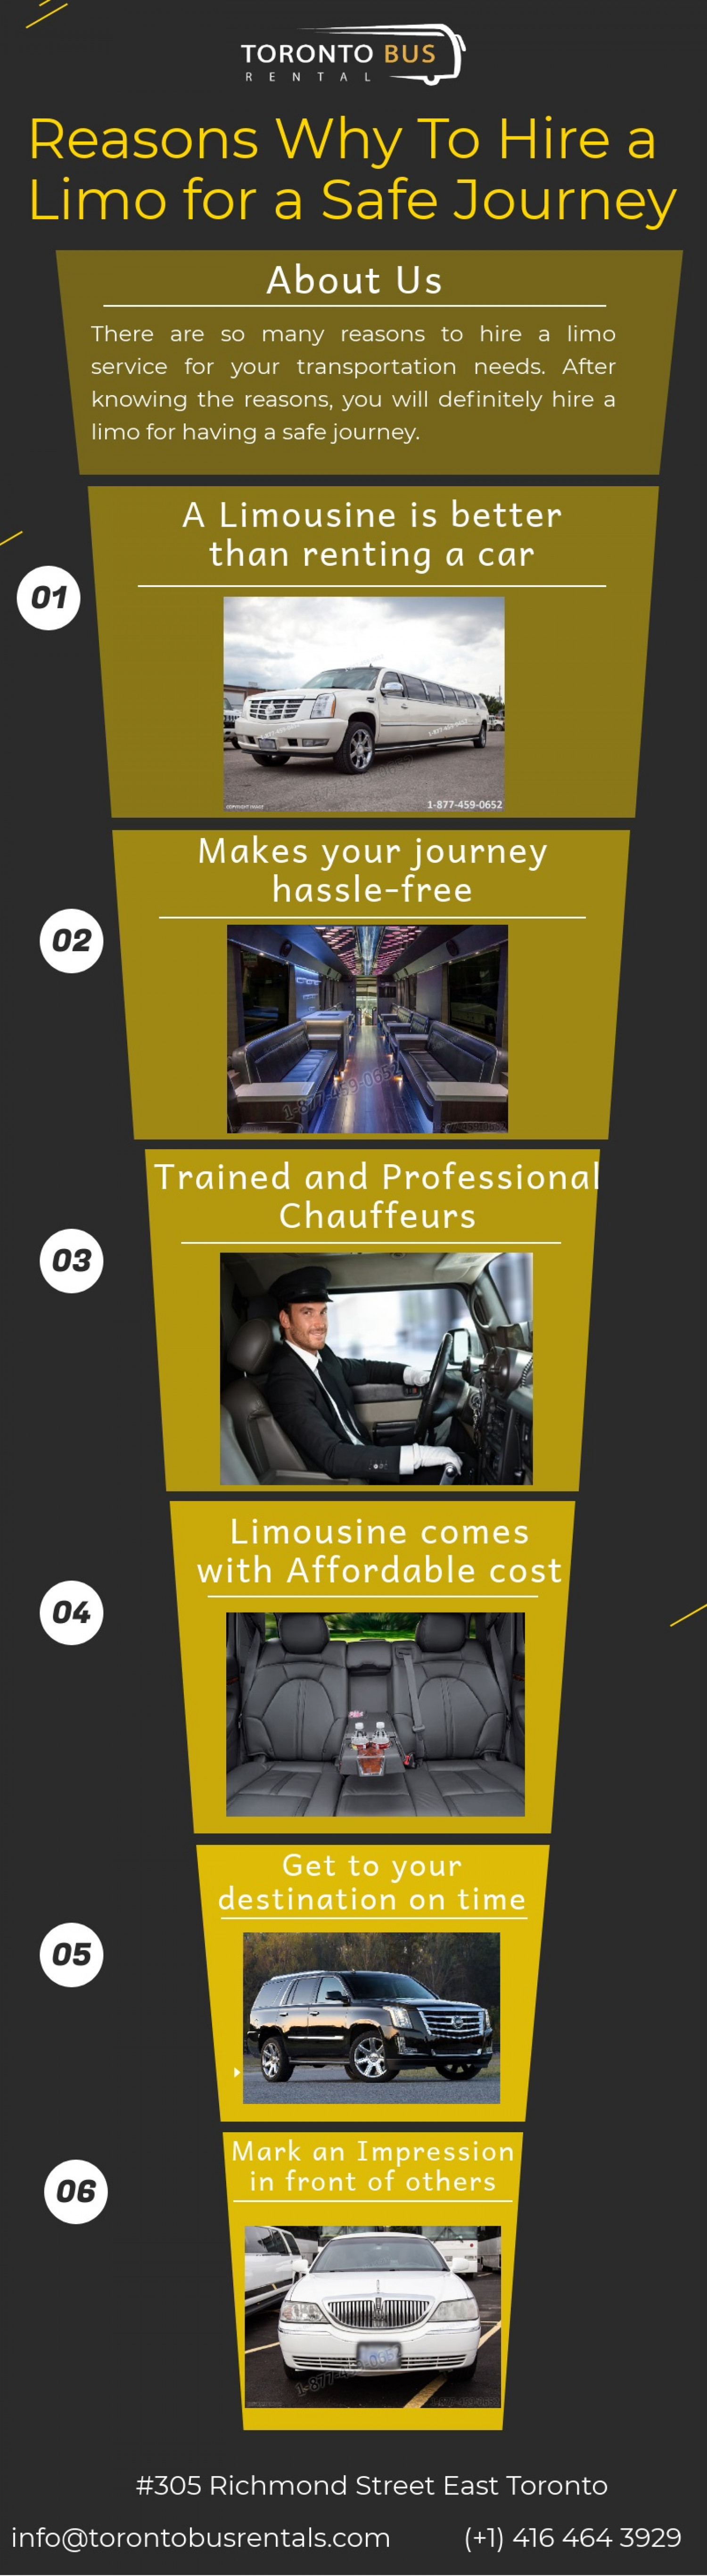 Reasons Why To Hire A Limo For A Safe Journey Infographic